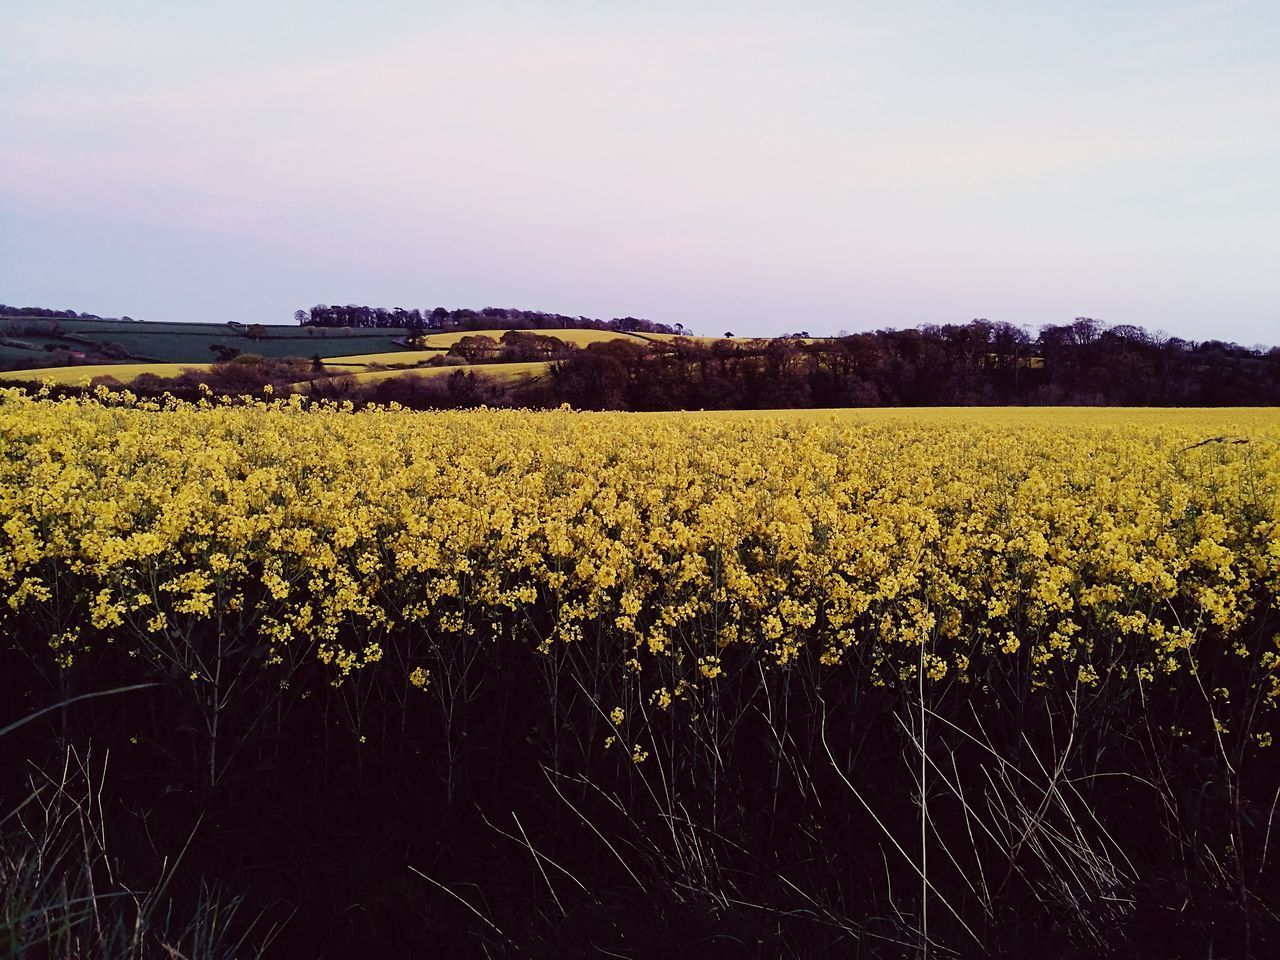 agriculture, field, crop, farm, yellow, growth, nature, cultivated land, rural scene, flower, plant, oilseed rape, beauty in nature, sky, no people, tranquility, cultivated, scenics, landscape, tranquil scene, outdoors, day, freshness